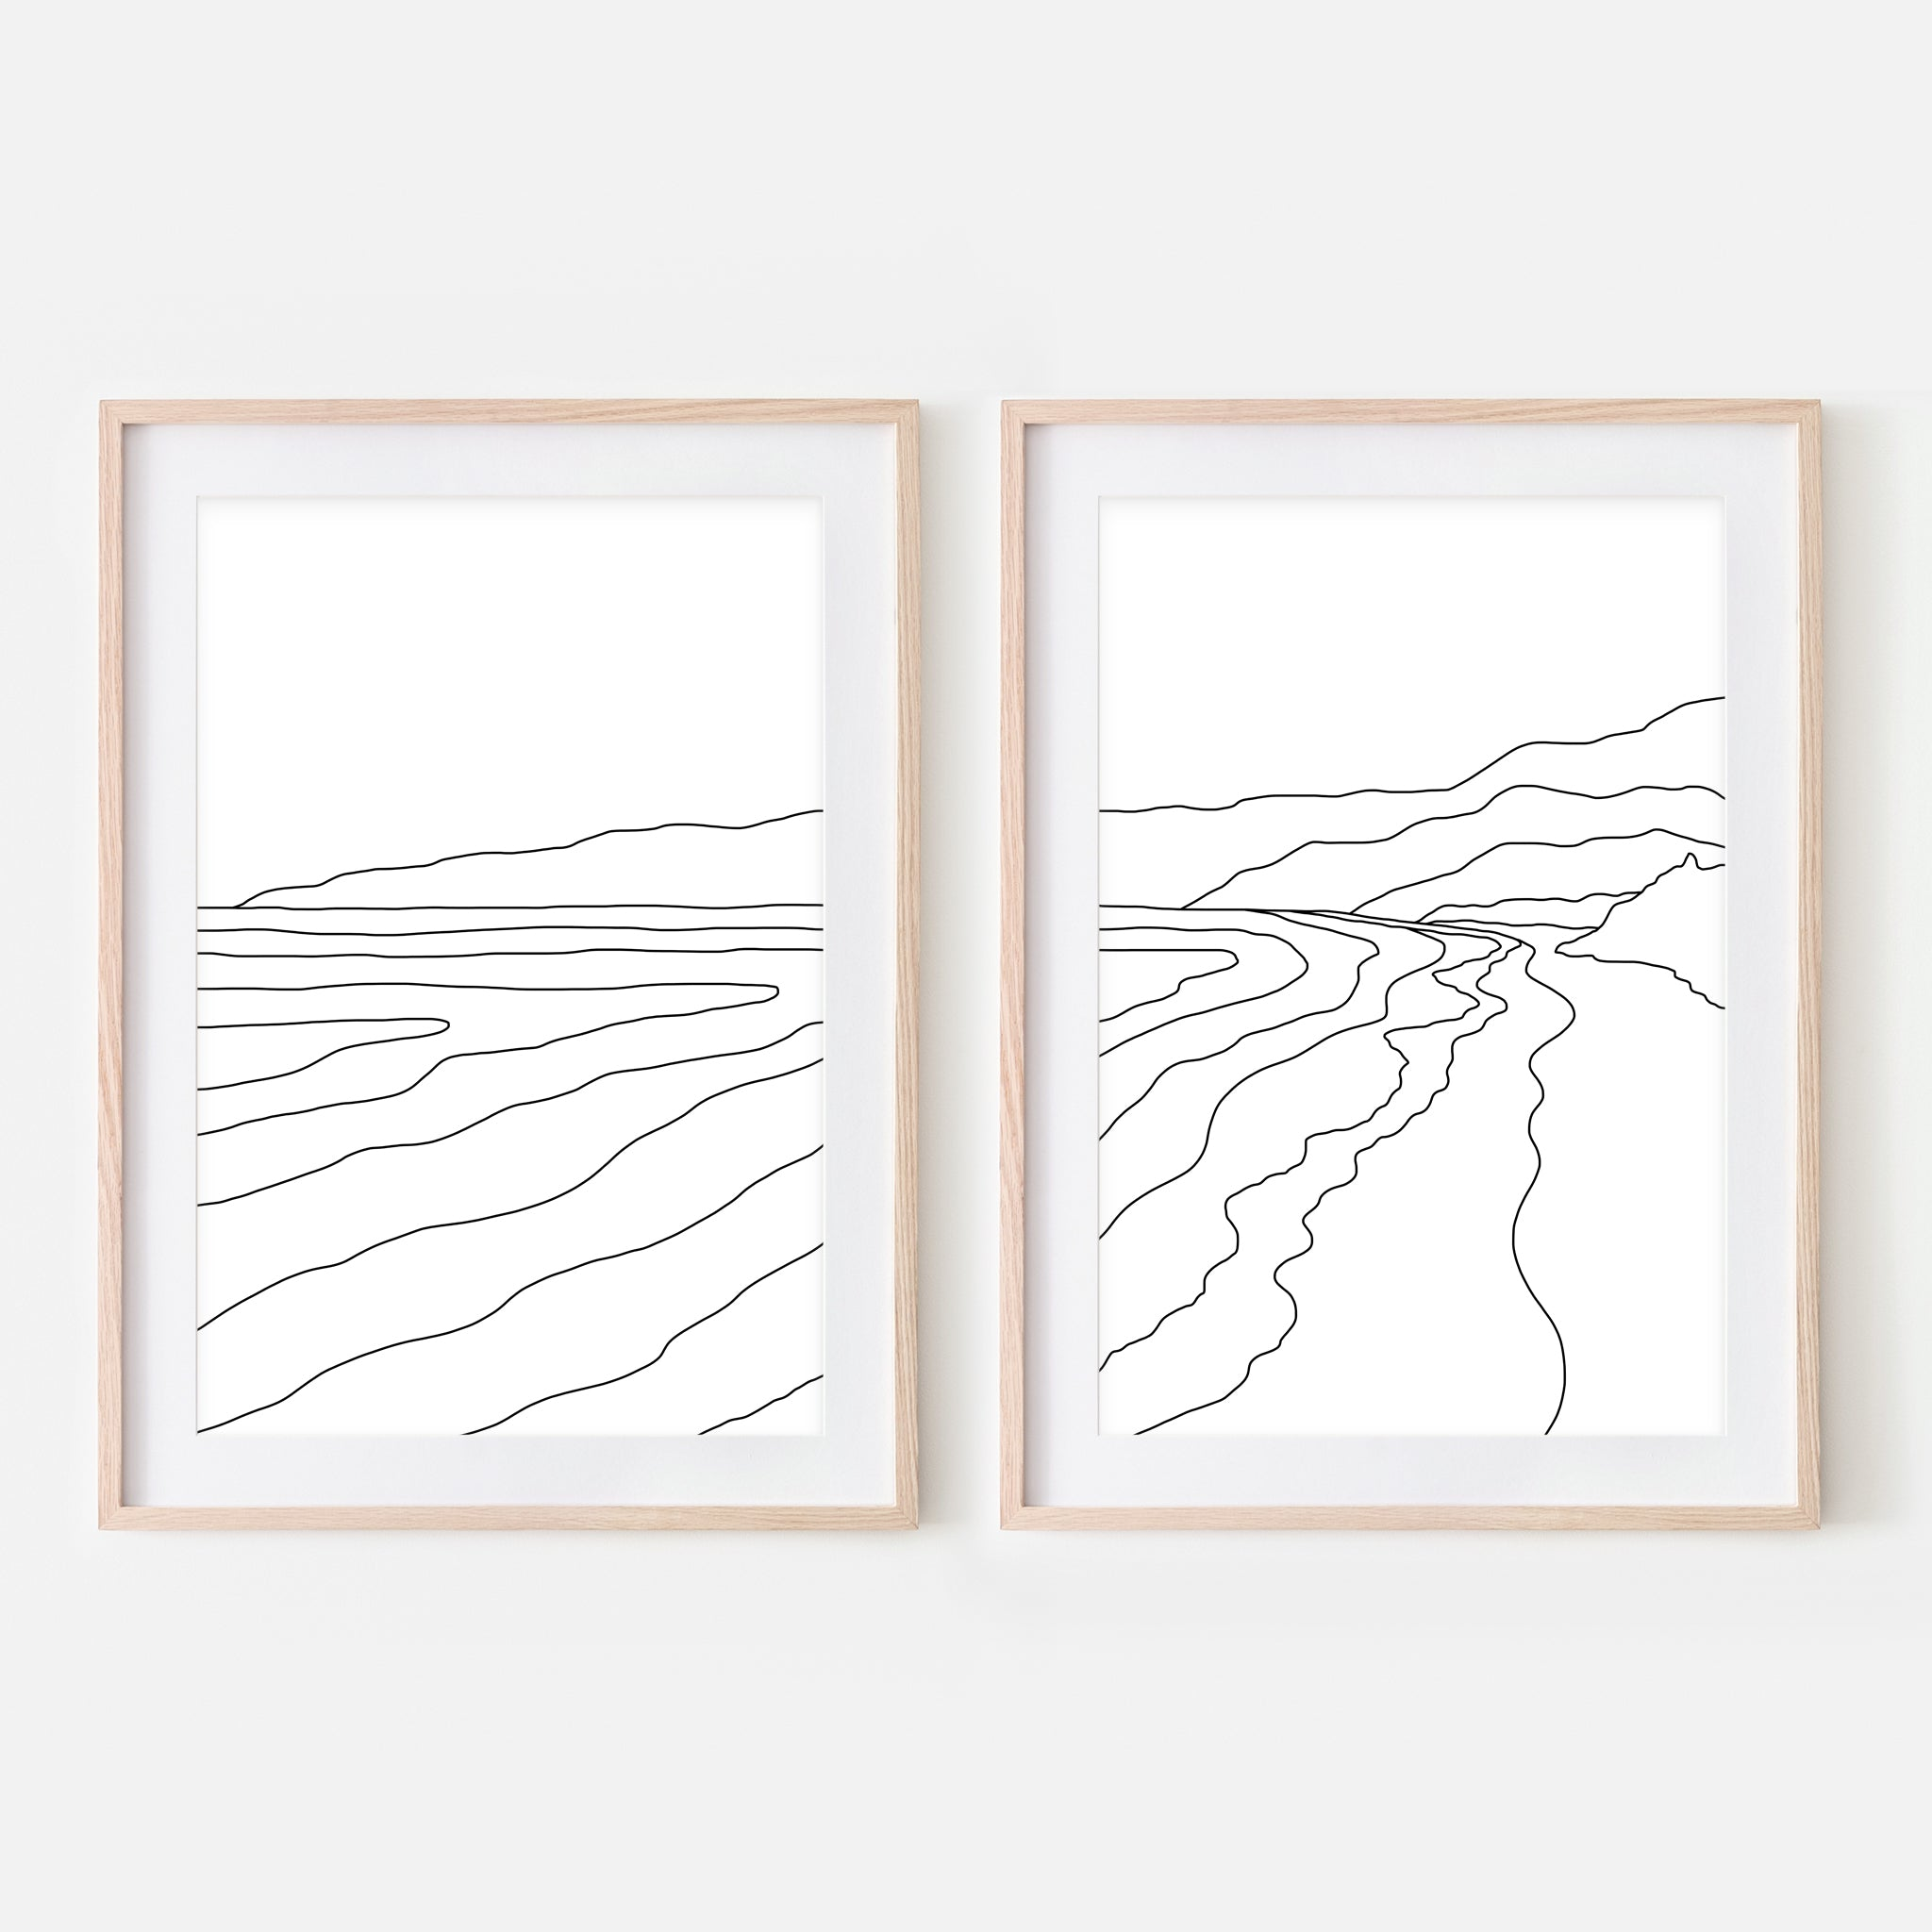 Beach Set No. 5 - Set of 2 Wall Art - Ocean Line Art - Mountain Coastal Decor - Minimalist Abstract Landscape - Black and White Print, Poster or Printable Download